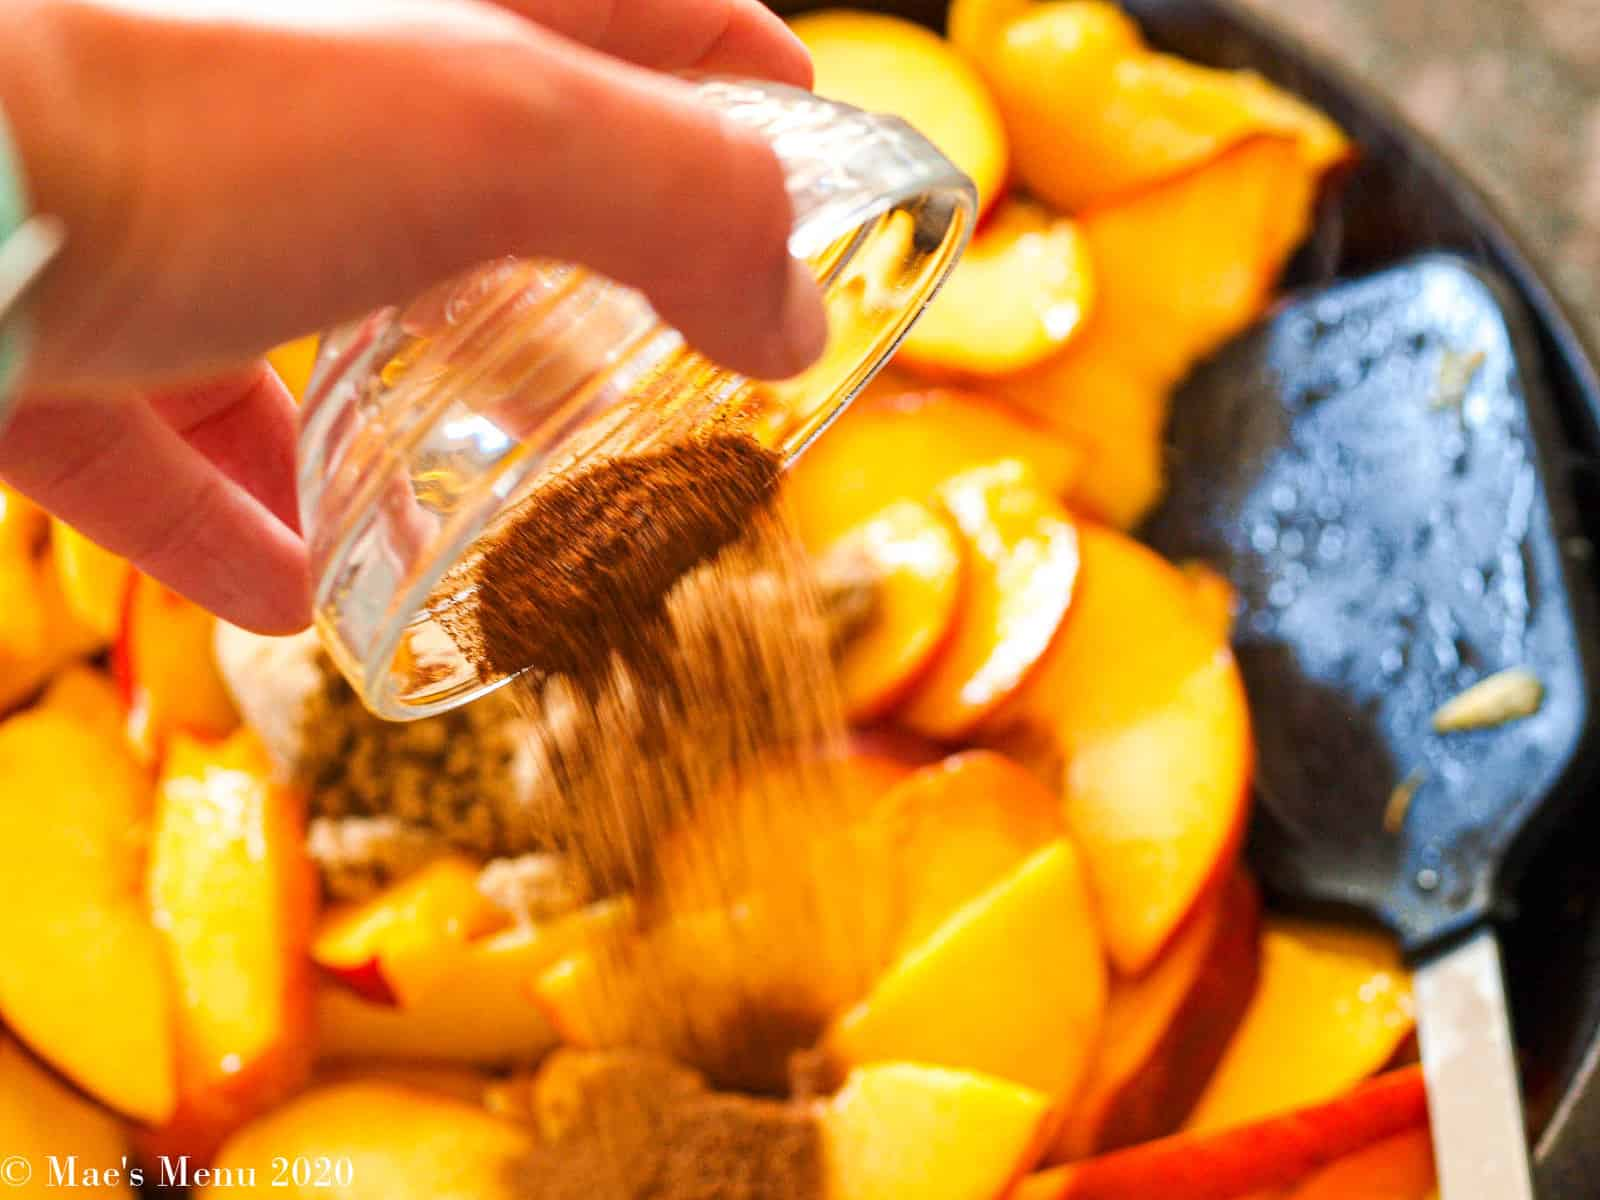 adding brown sugar and spices into the peaches